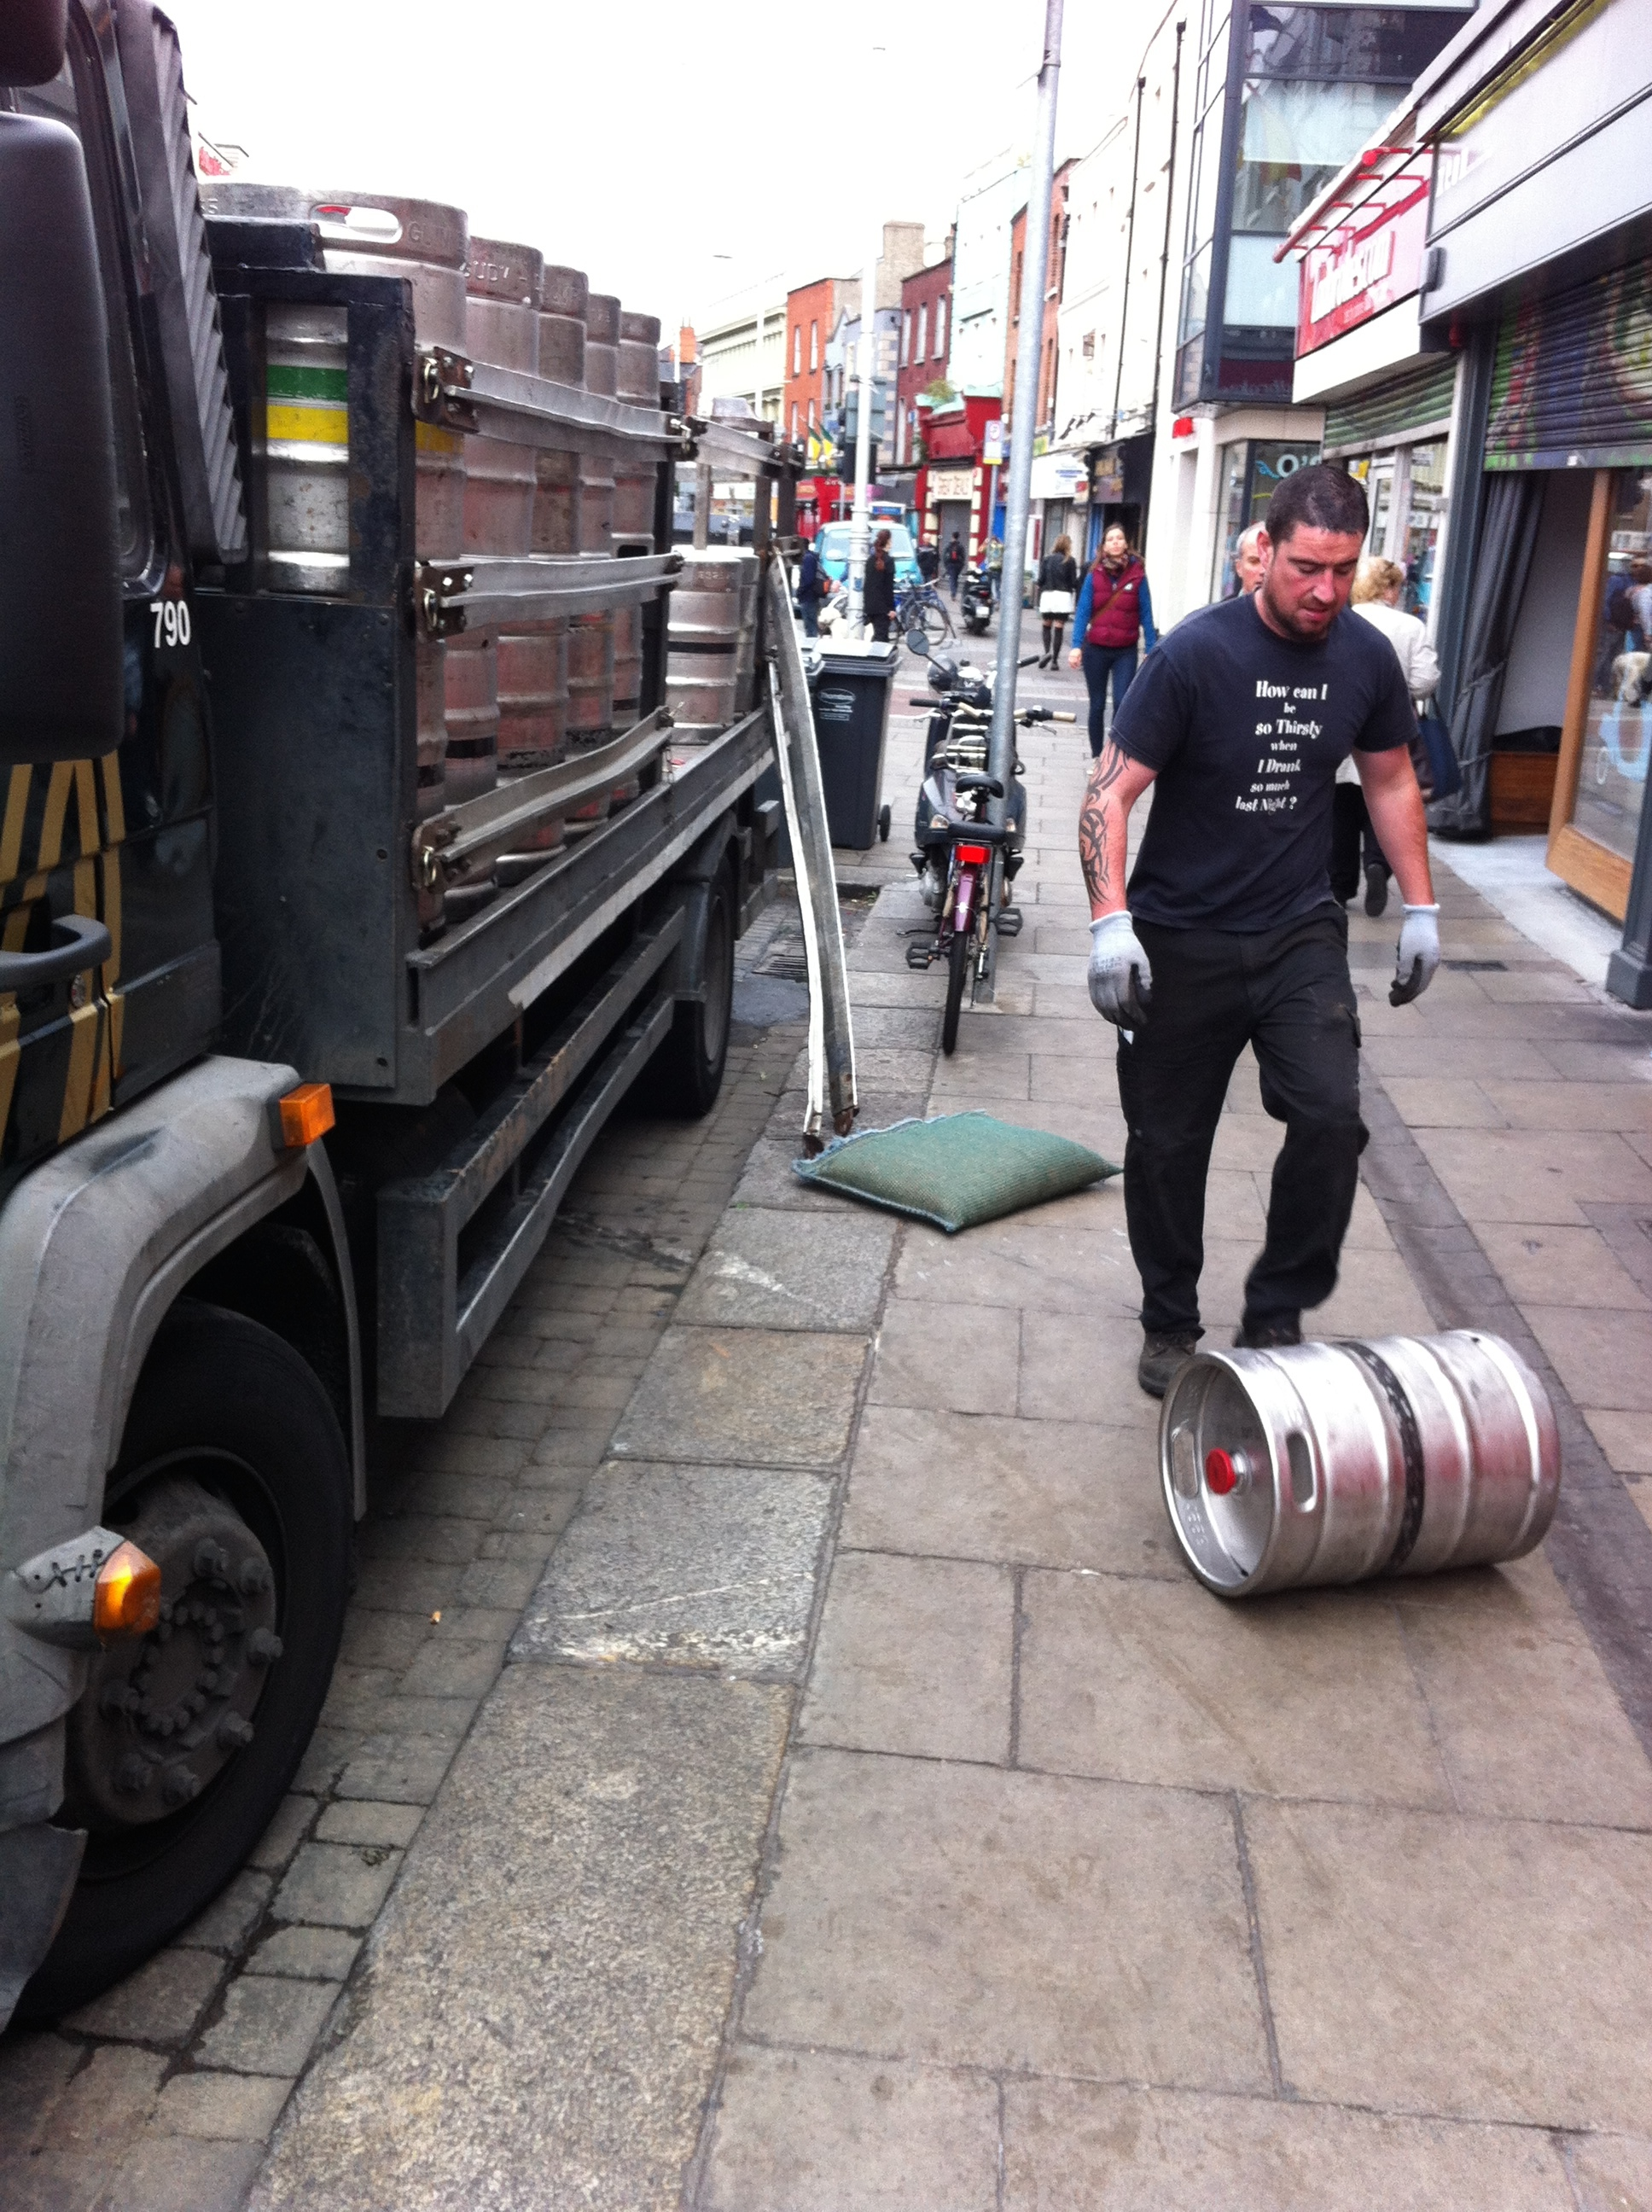 Guinness Time! It was music to our ears when we heard the fresh kegs of Guinness being delivered.